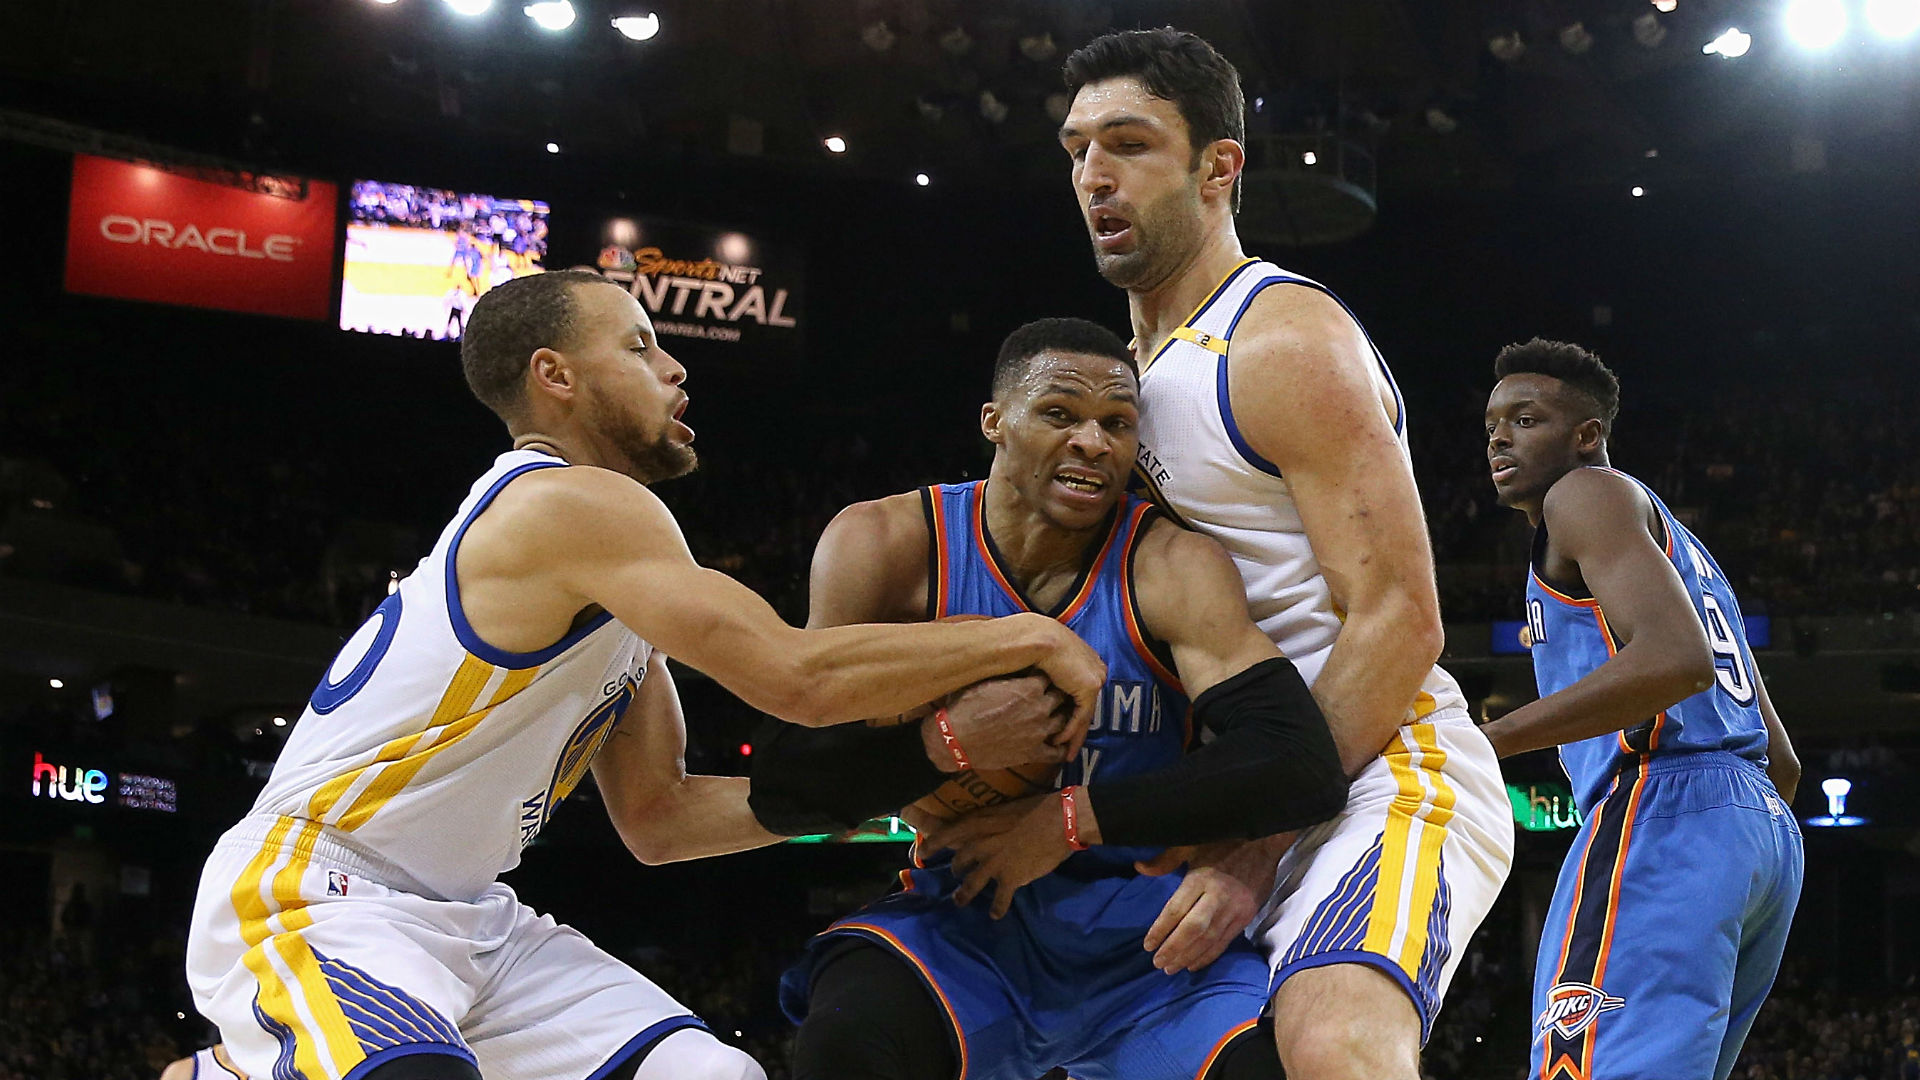 Steven Adams doesn't believe Zaza Pachulia deserves on-court retaliation